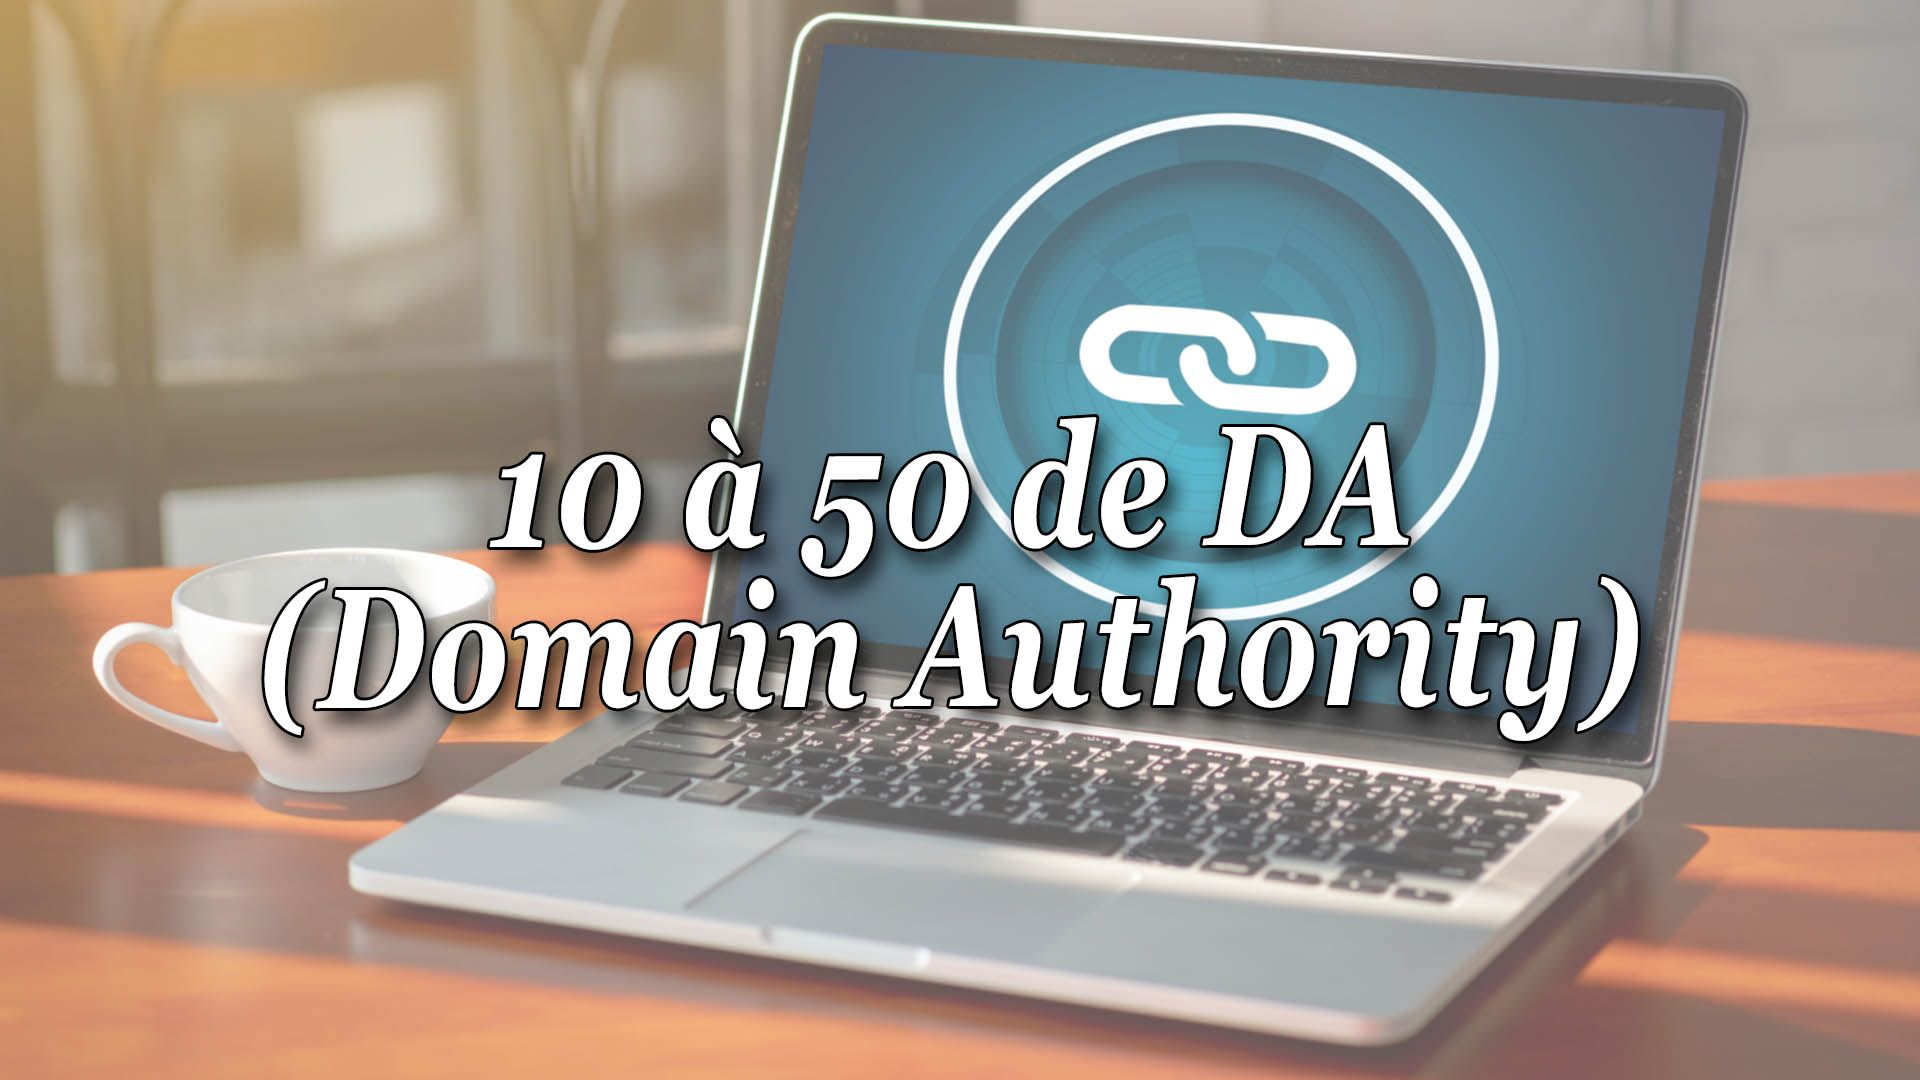 10 à 50 de DA (Domain Authority) : Backlinks faciles #GrowthHacking #WEbMarketing #FormationGrowthHacking #CentreDeFormationFrance #TunnelAARRR #AARRR #SocialMedia #CommunityManagement #SEO #Backlinks #DomainAuthority